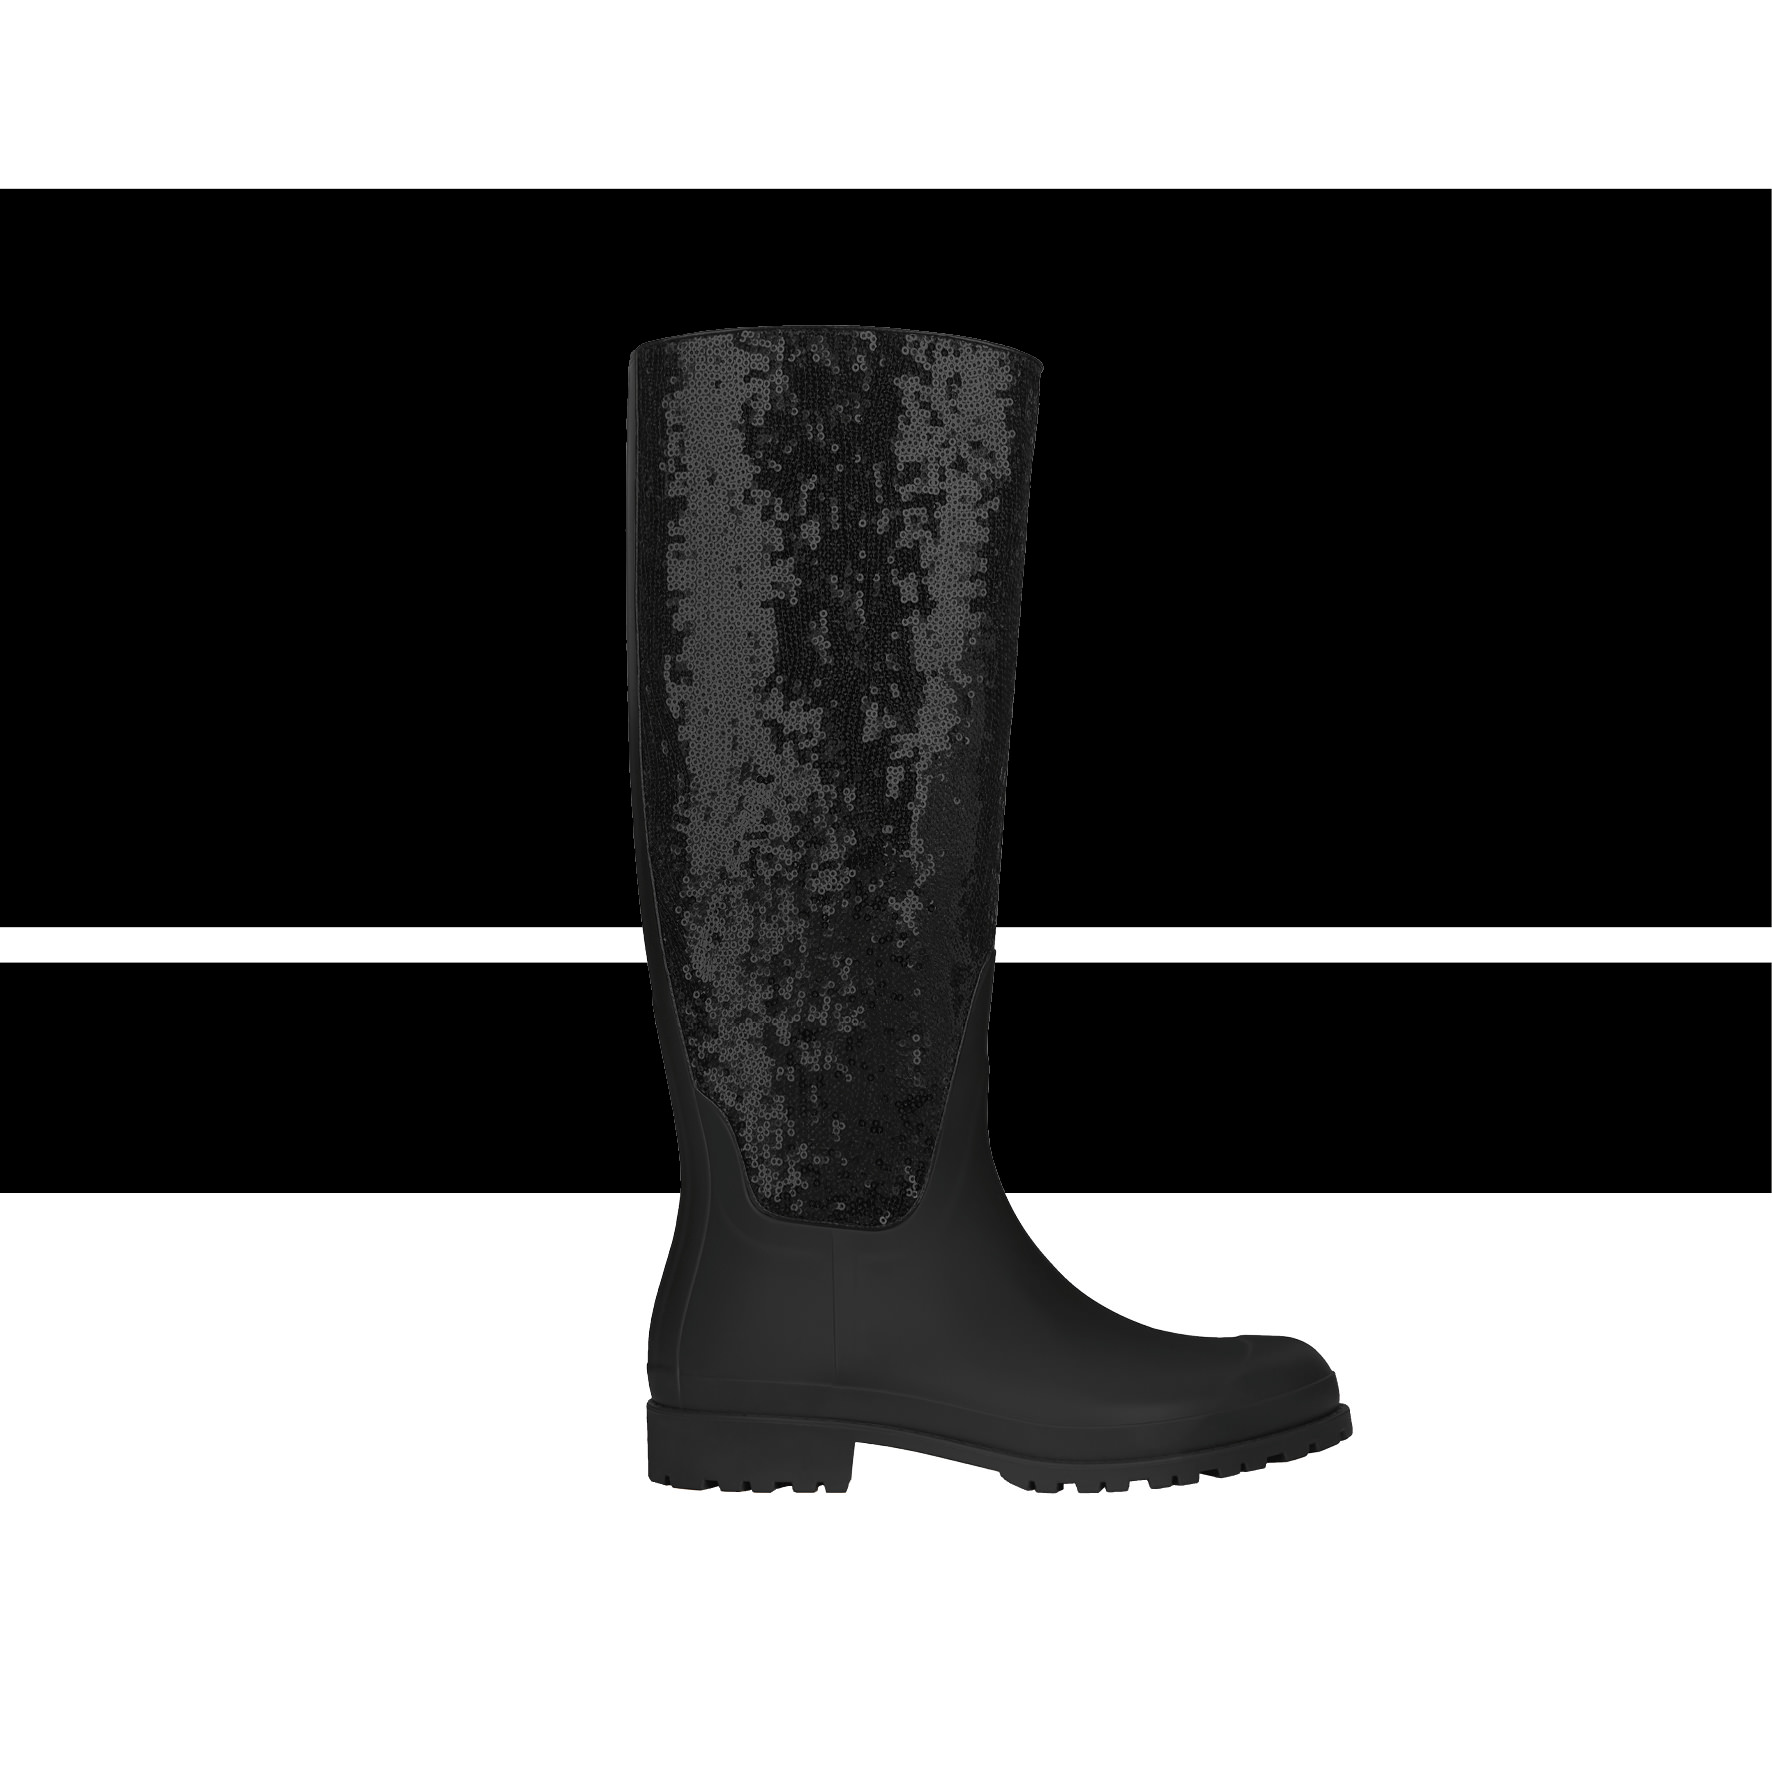 Fetish object of the week: Saint Laurent Paris's boots